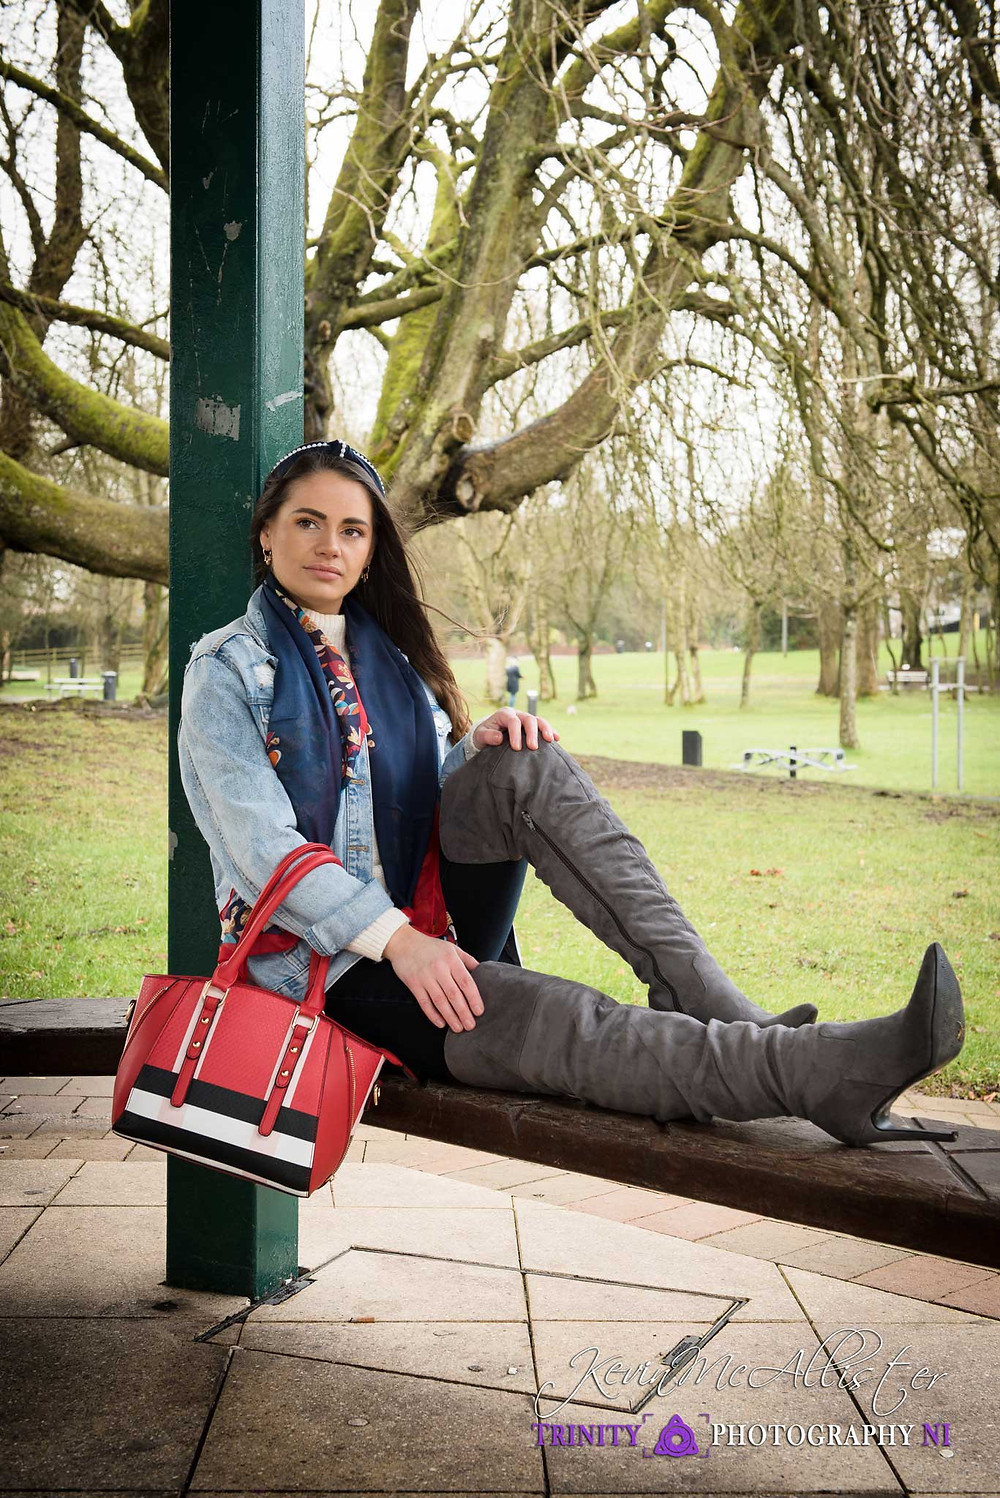 runette fashion model with knee high boots and fashion accessories.